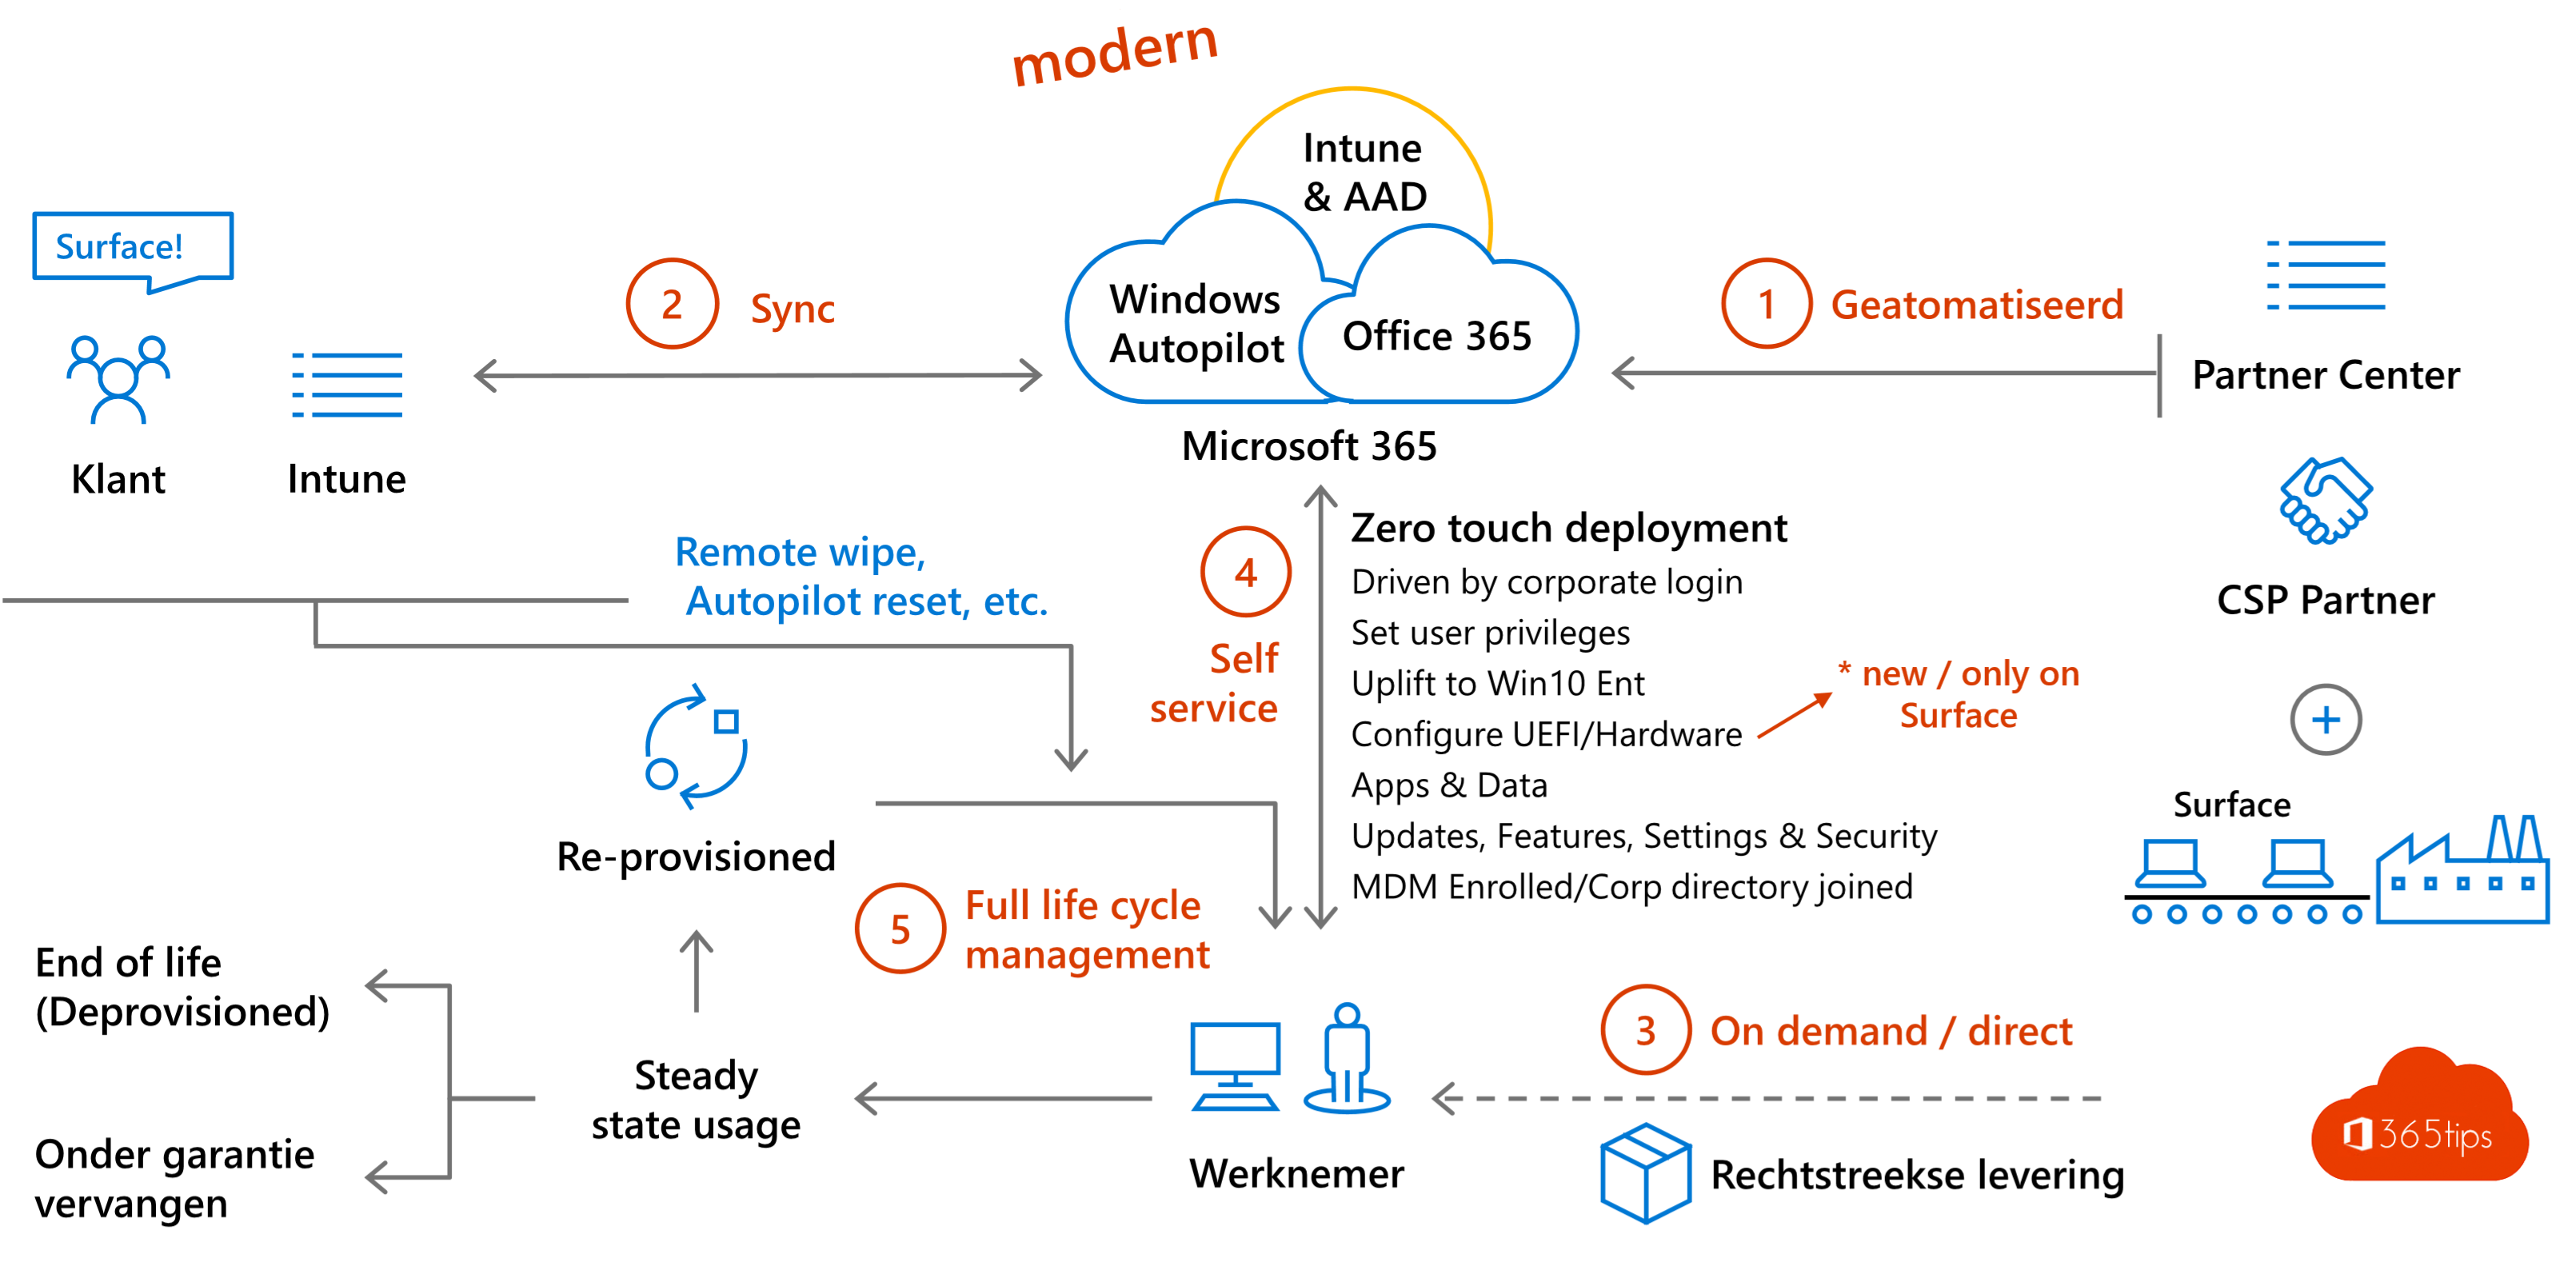 Windows Autopilot – introductie in 4 stappen!